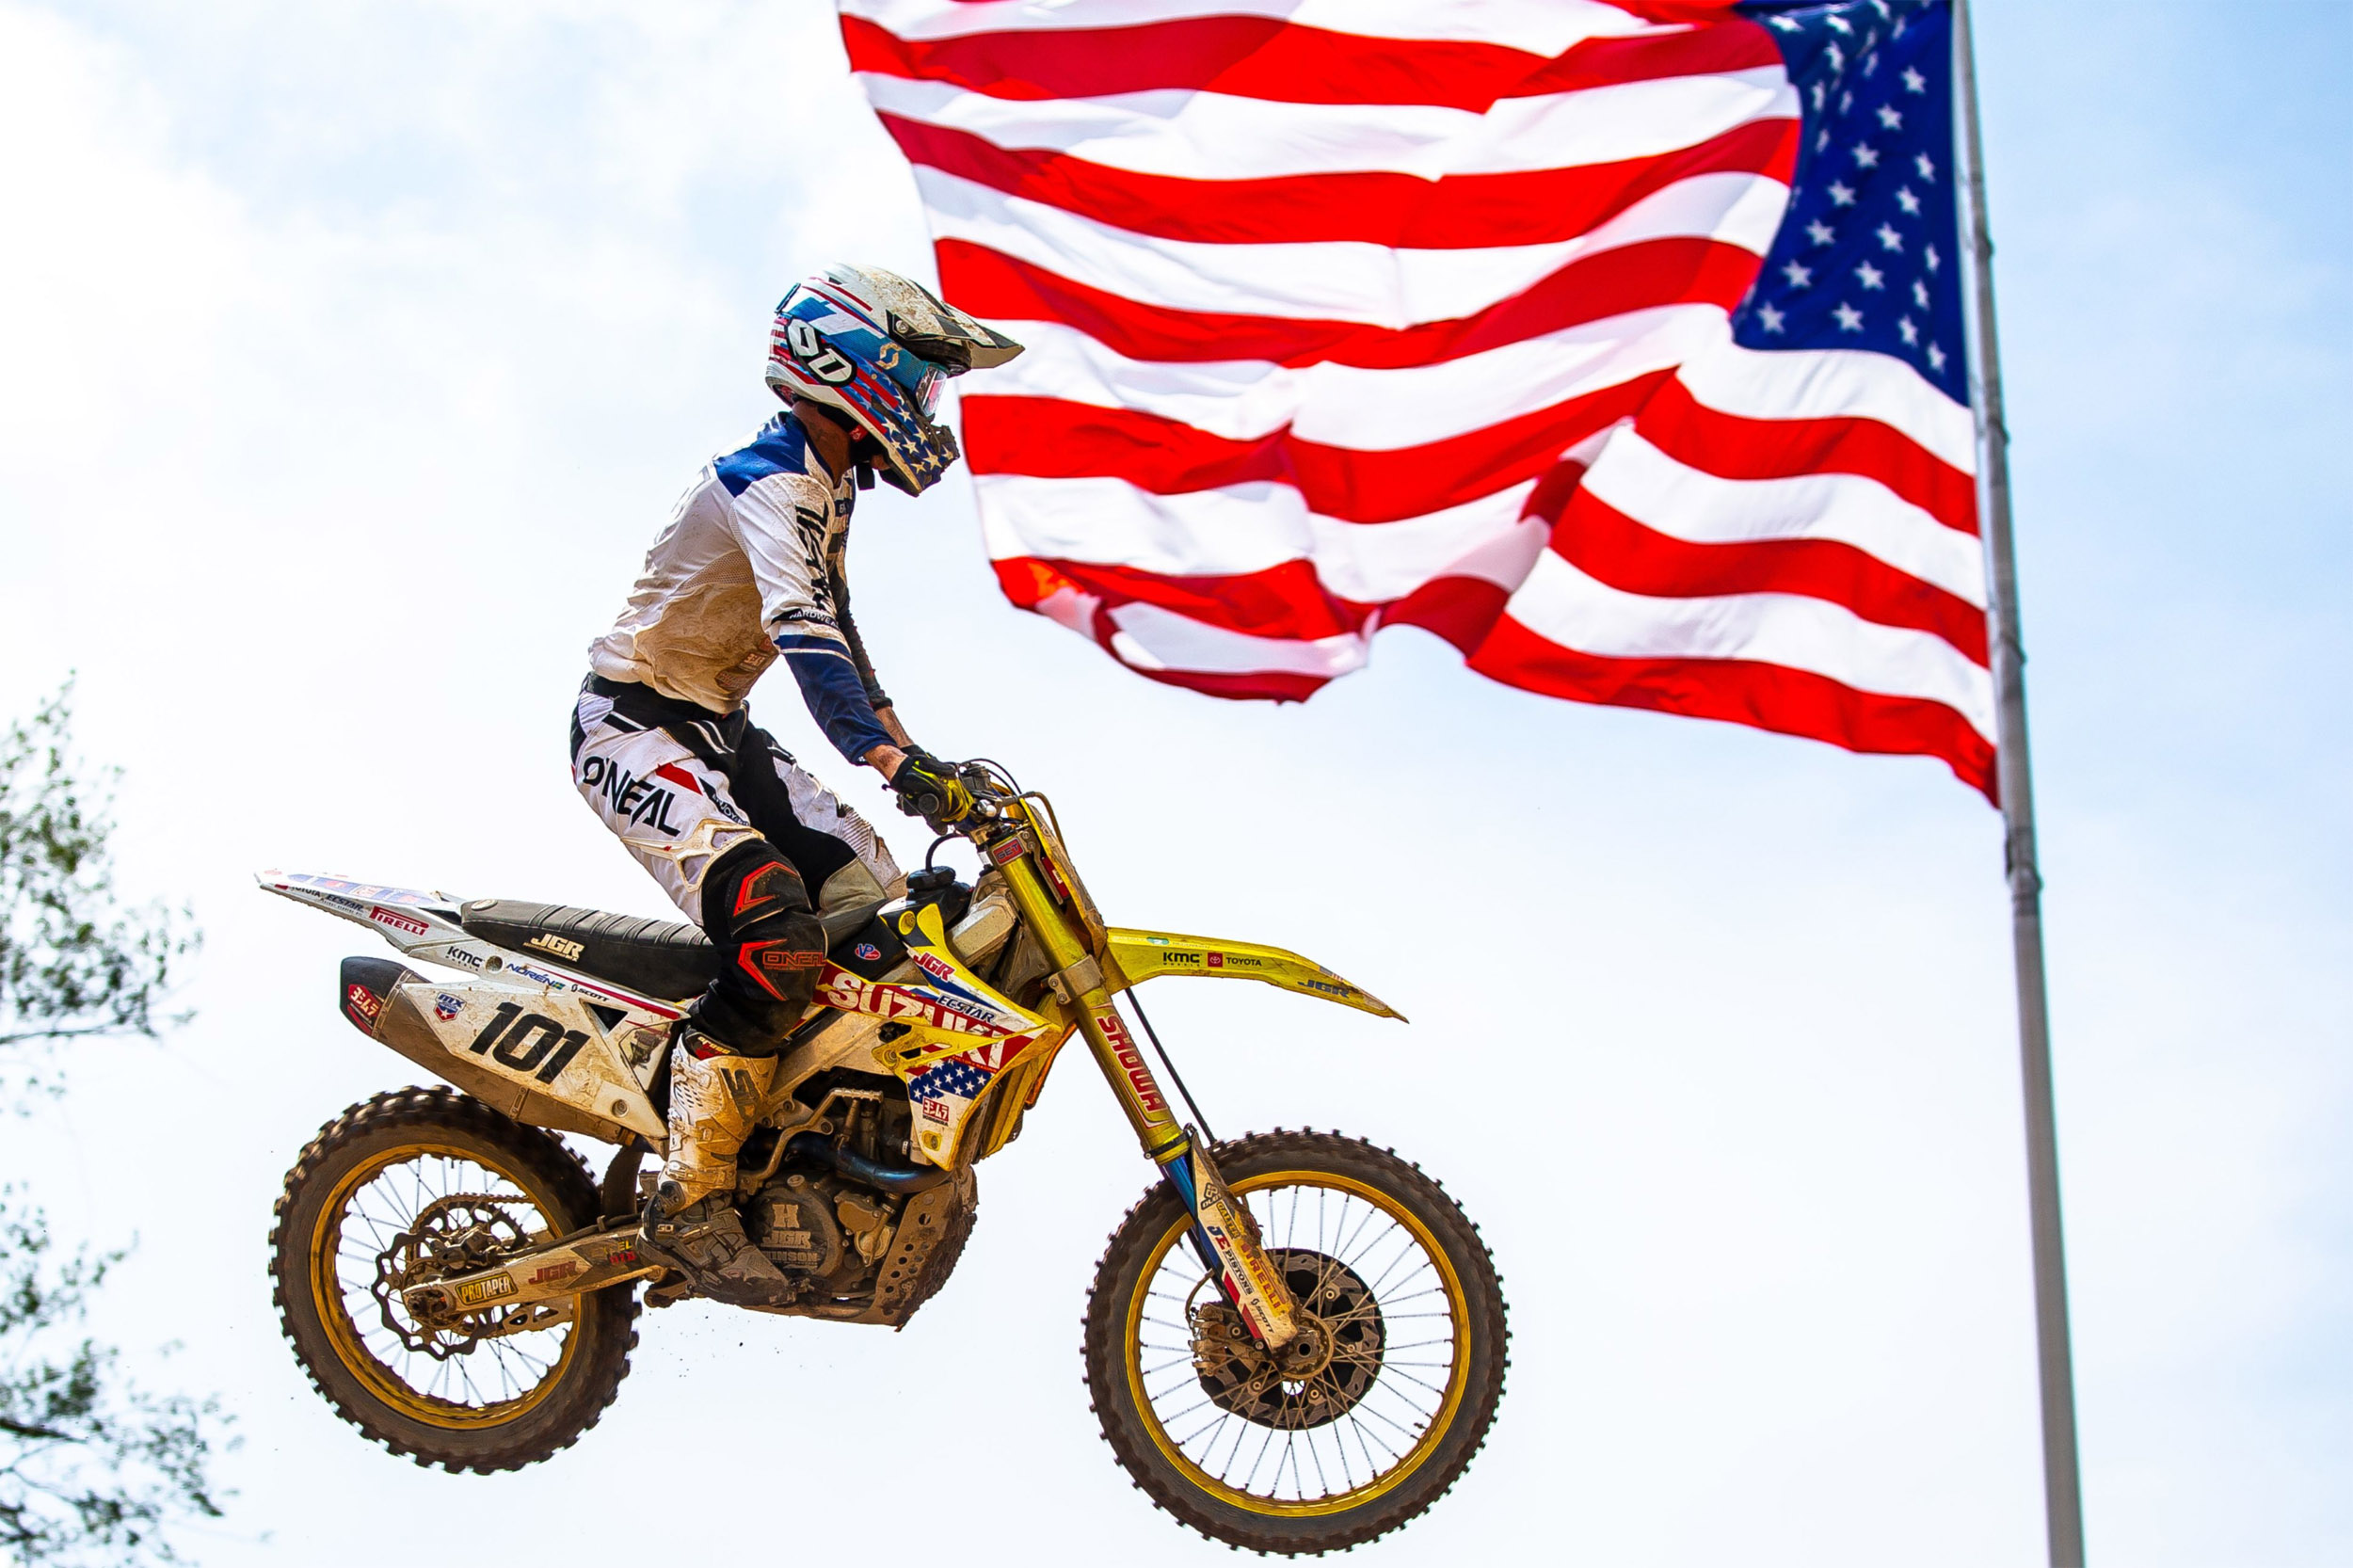 Fredrik Noren (#101) celebrates America's independence with a top-ten overall finish on his RM-Z450 - RedBud